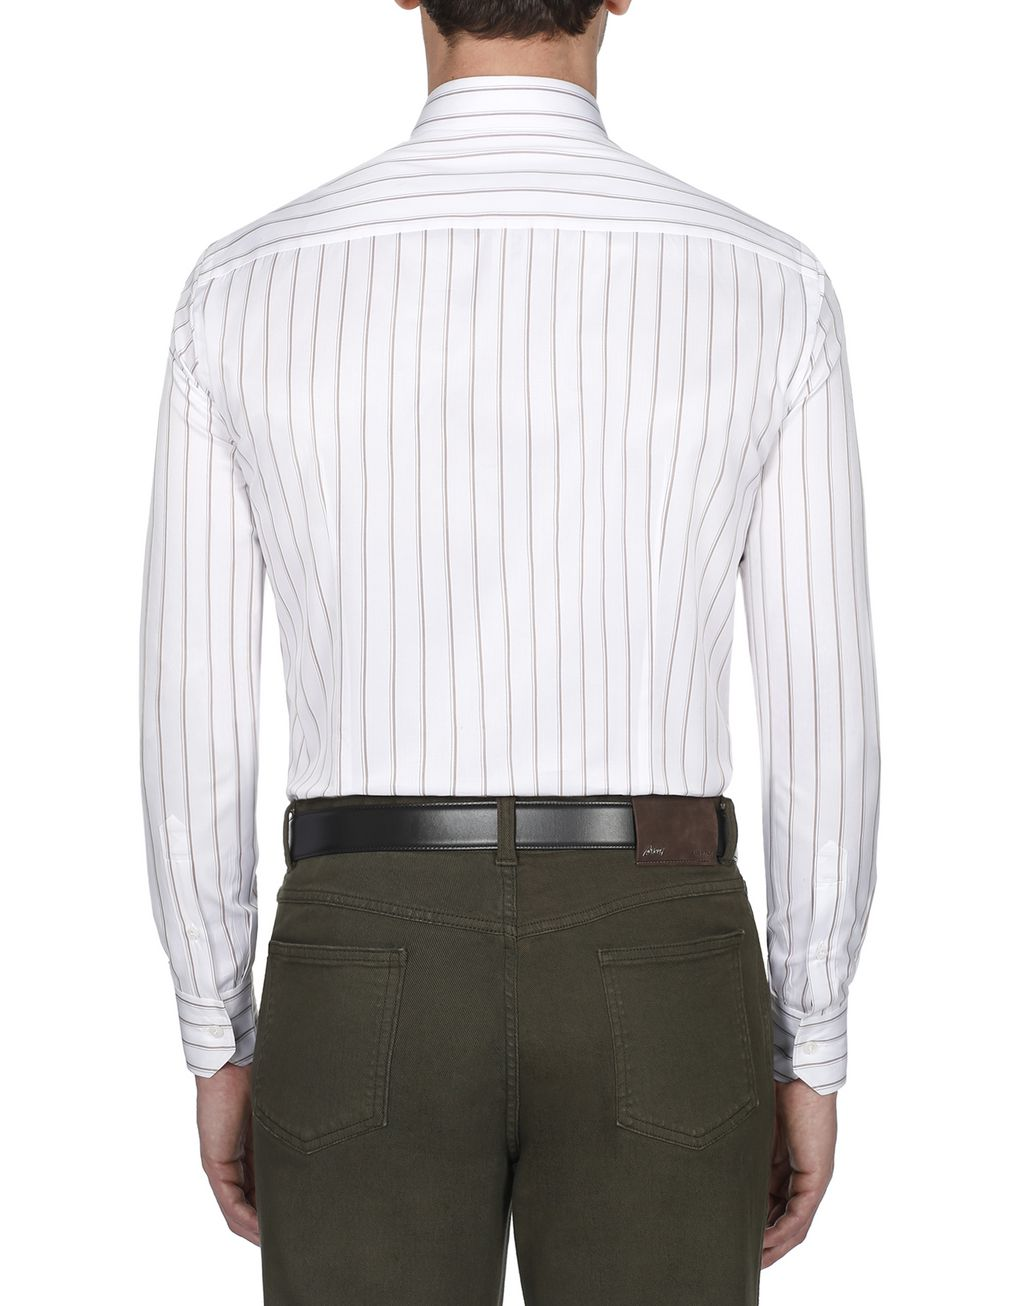 BRIONI White and Brown Striped Shirt Formal shirt Man d